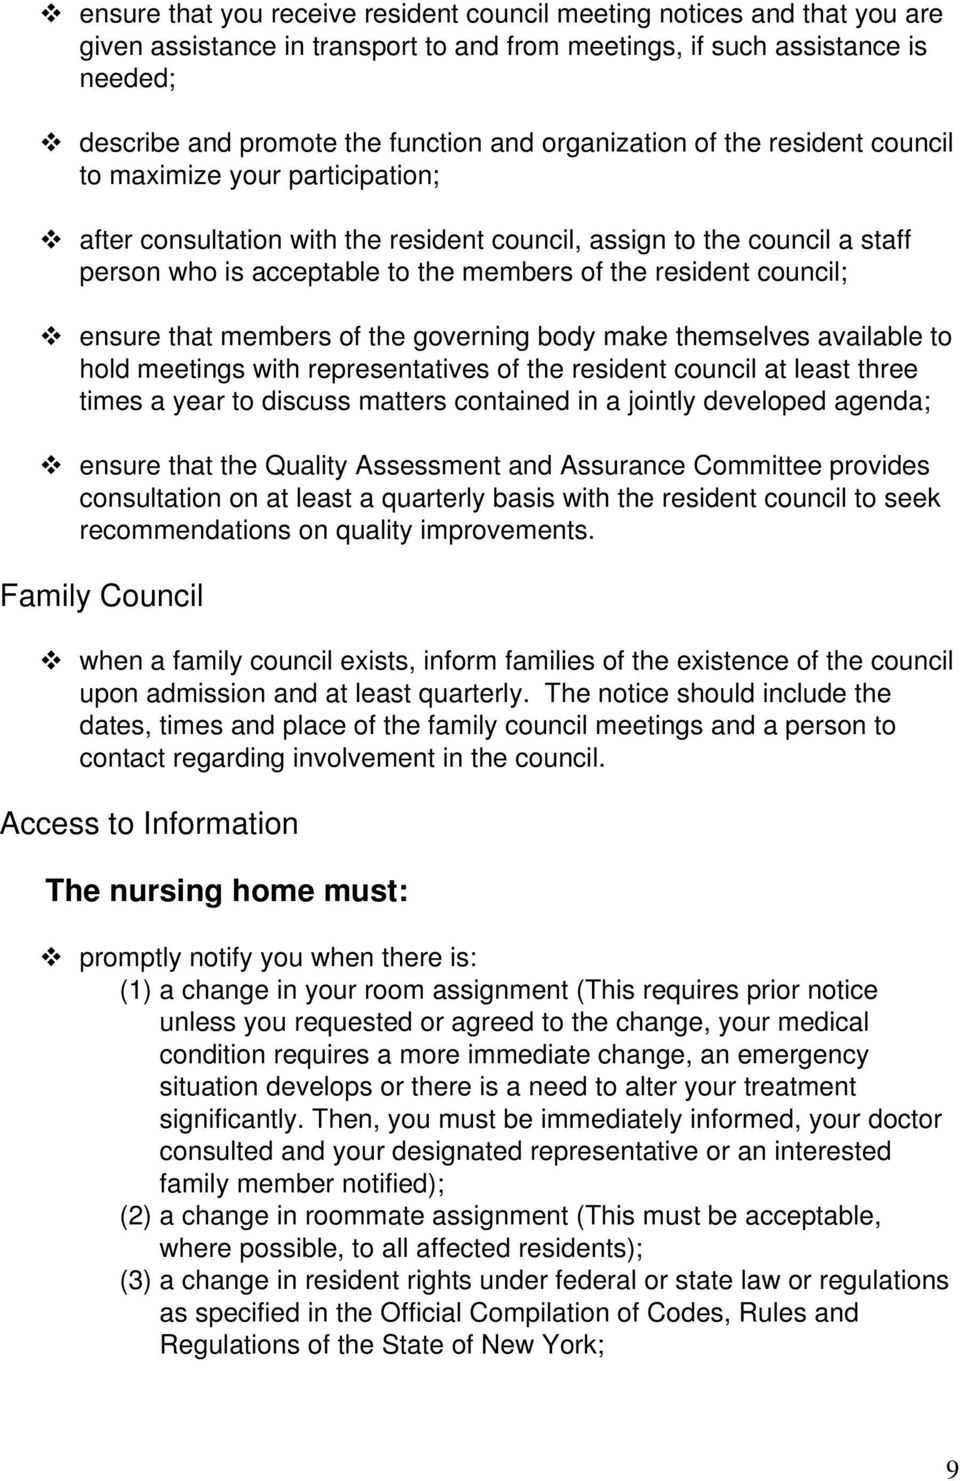 resident council; ensure that members of the governing body make themselves available to hold meetings with representatives of the resident council at least three times a year to discuss matters